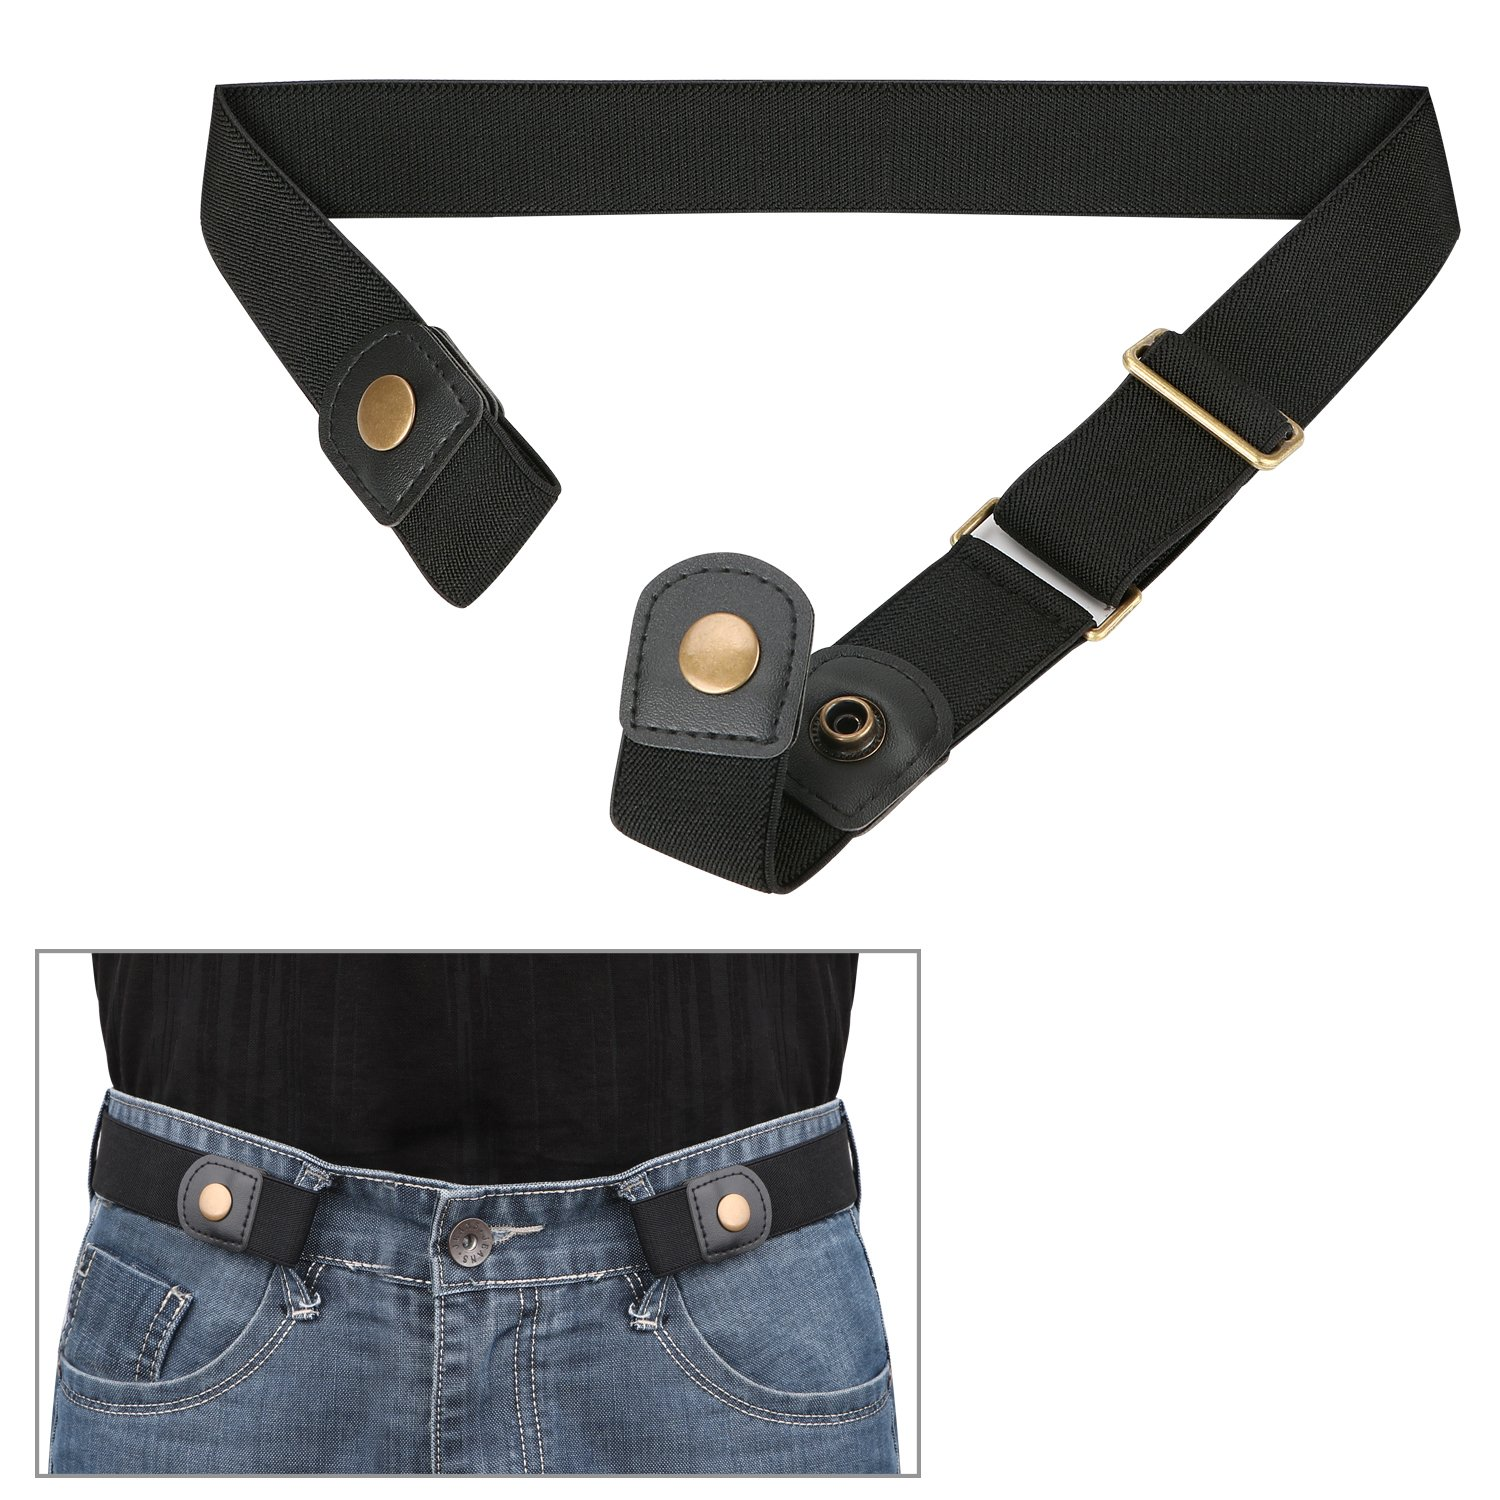 No Buckle Comfortable Elastic Stretch Belt for Men/Women Invisible, No Bulge, No Hassle Soft, Breathable, Adjustable